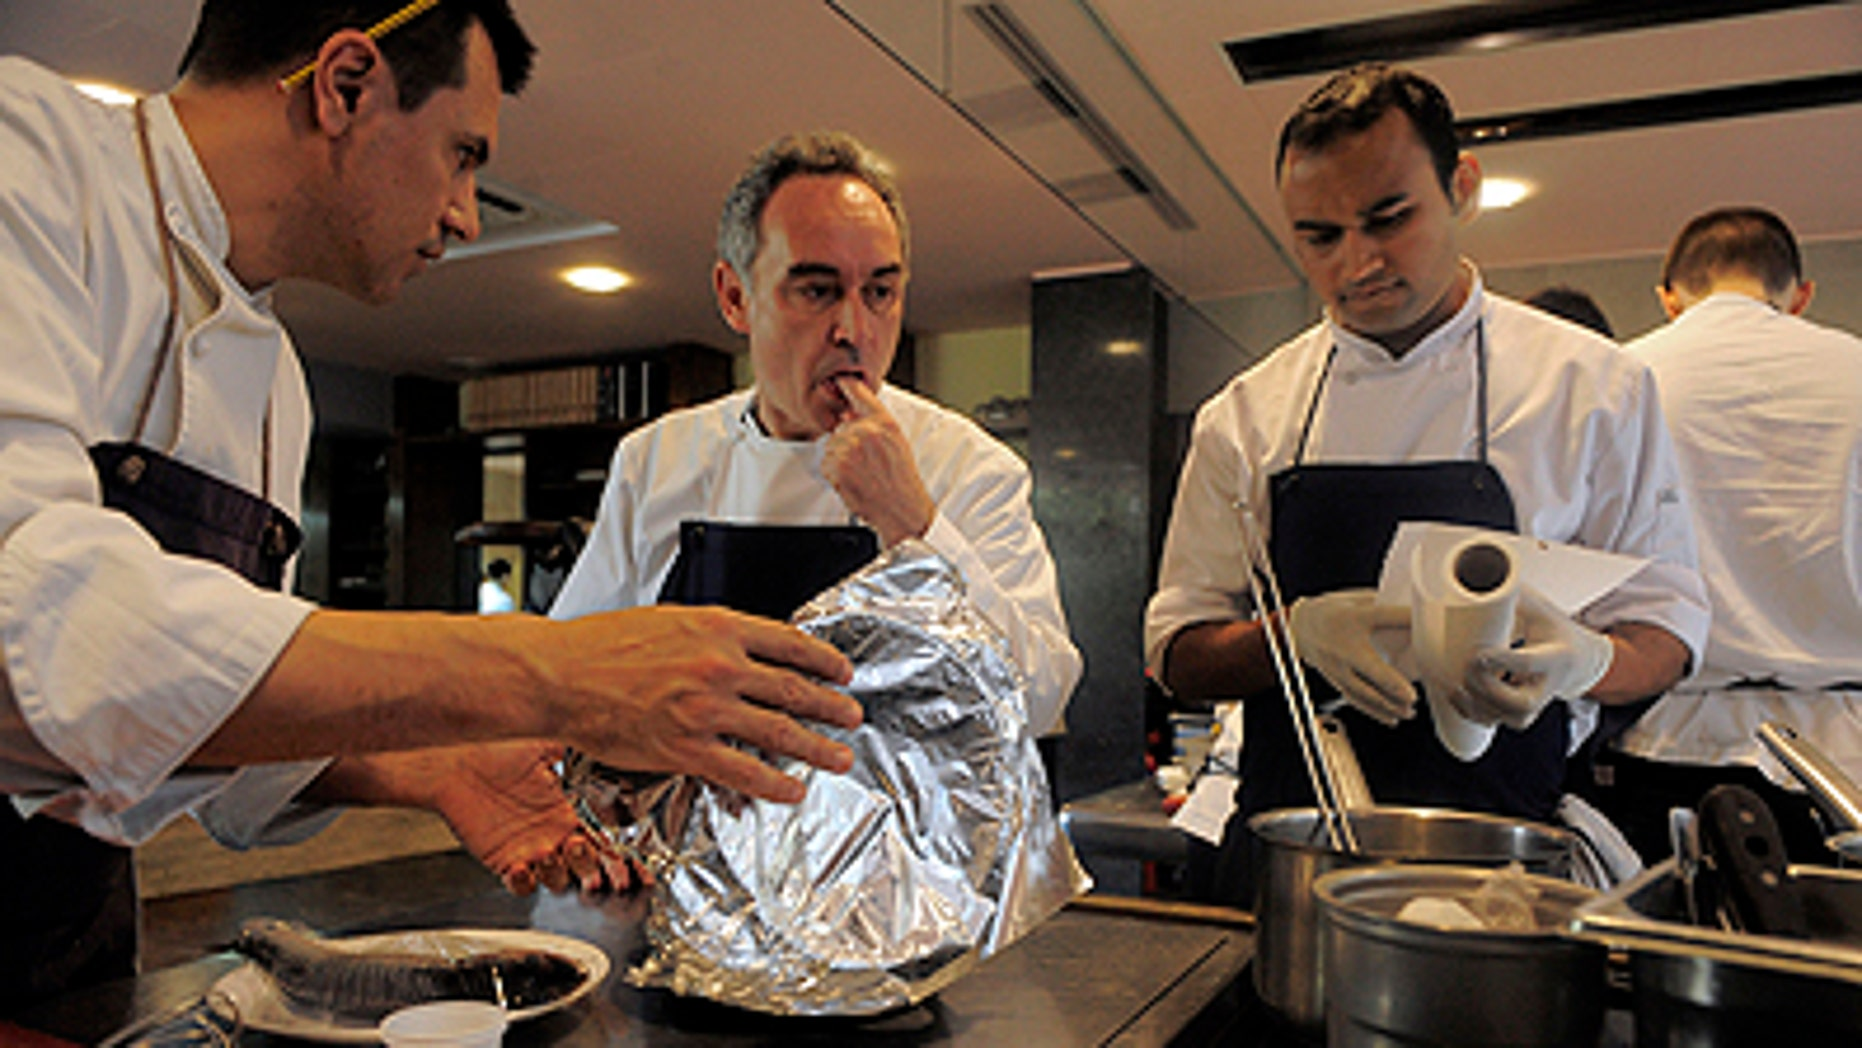 This March 30, 2011 photo shows Spanish chef Ferran Adria as he tastes some food in the kitchen of his restaurant elBulli in Roses, Spain. The oft-imitated, modernist wizardry that Adria has pioneered for nearly 20 years in Spain's far northeastern tip has earned him fame, awards and the highest of honors.    (AP Photo/Manu Fernandez)